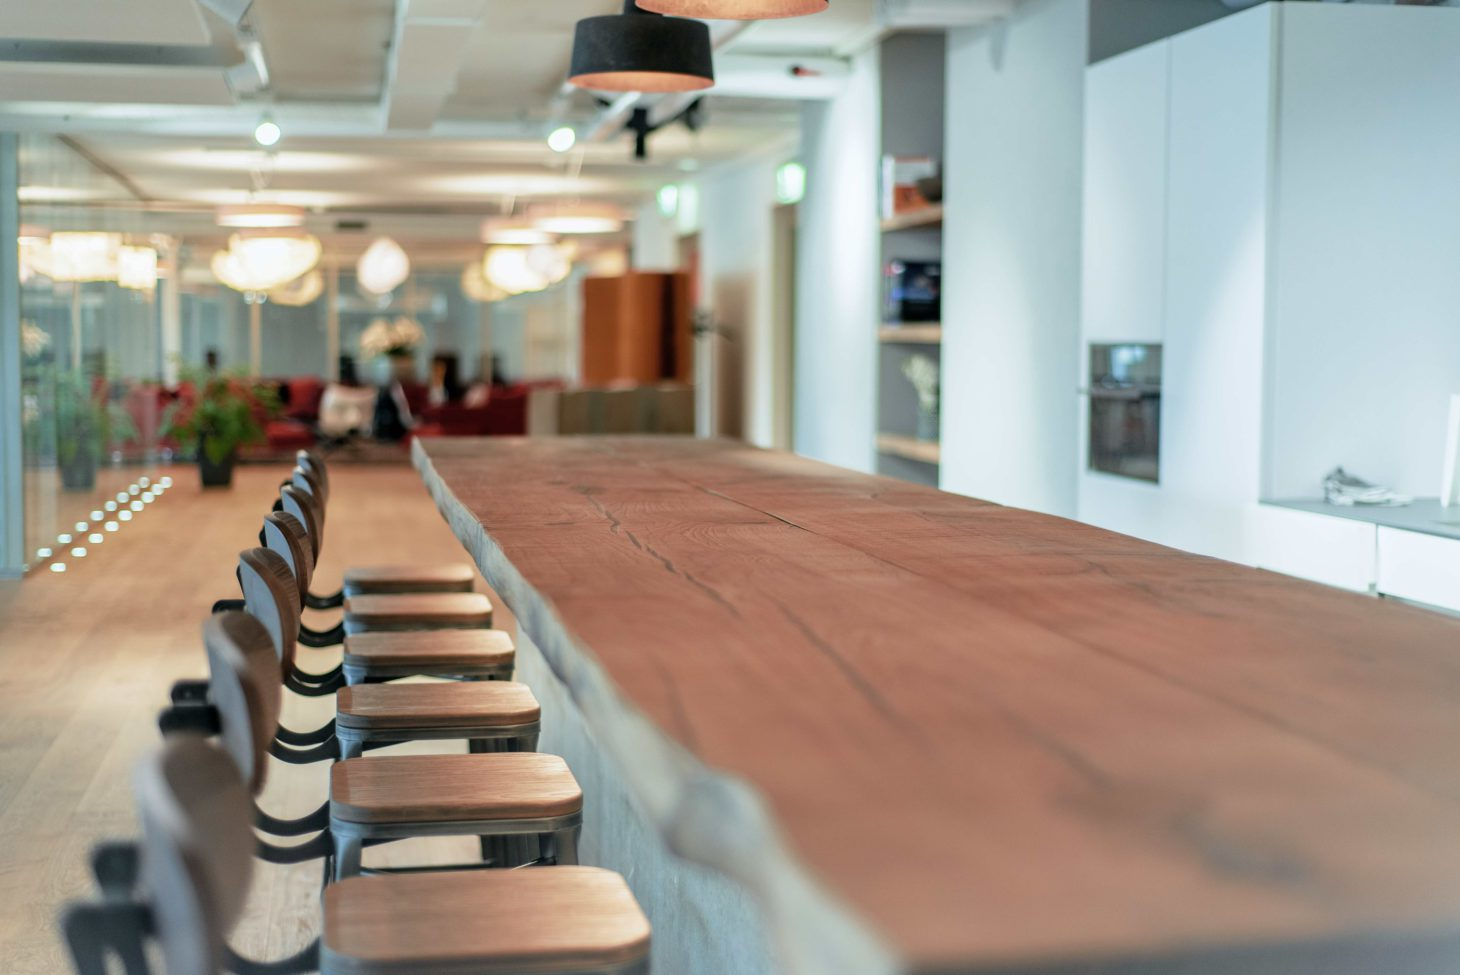 Image of a kitchen and a dining table with chairs, valantic Customer Engagement & Commerce St. Gallen branch